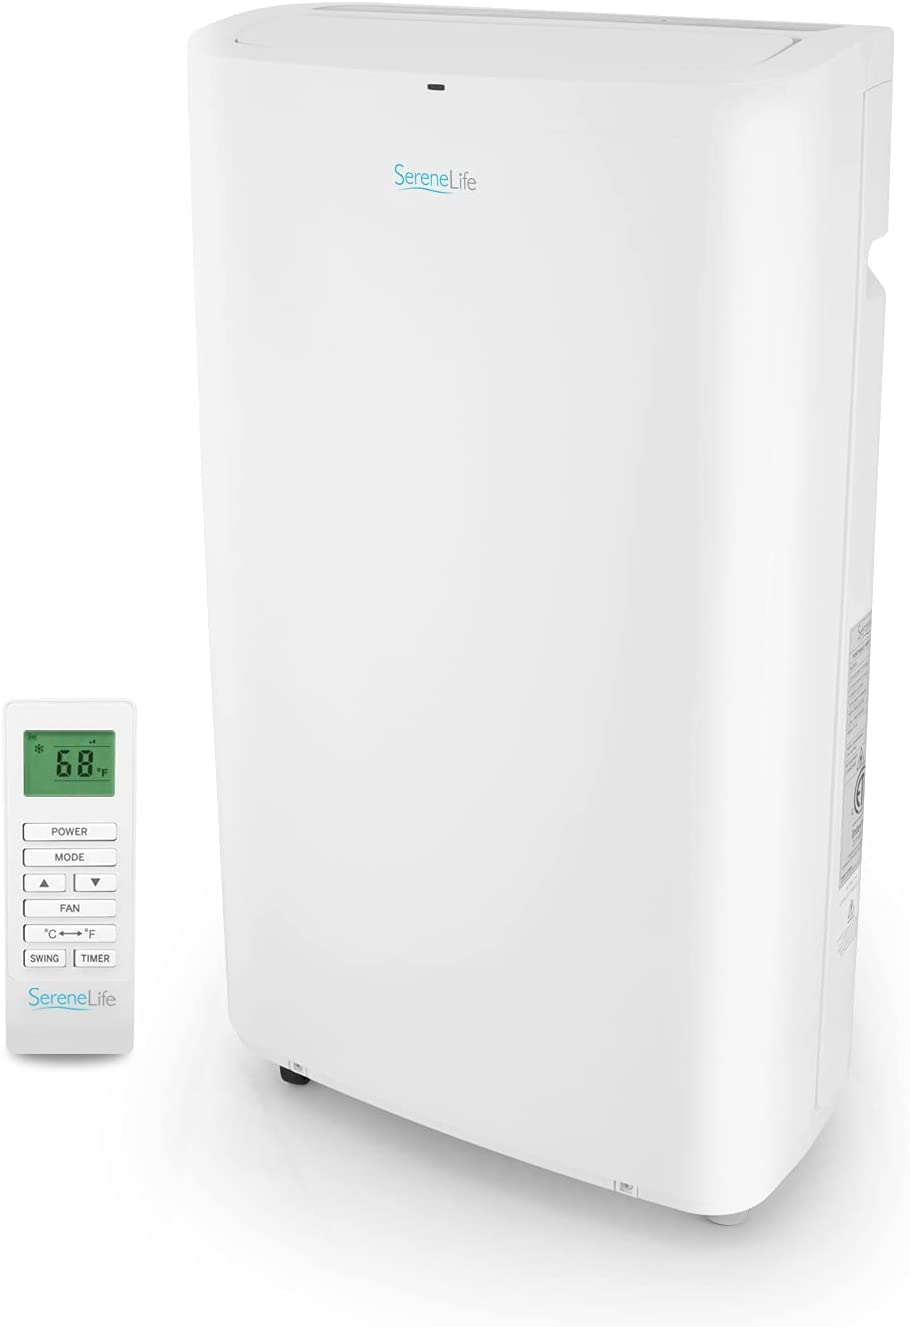 SereneLife SLPAC14 Challenge the lowest price of Japan SLPAC Portable Air Colorado Springs Mall Conditioner-Compact A Home